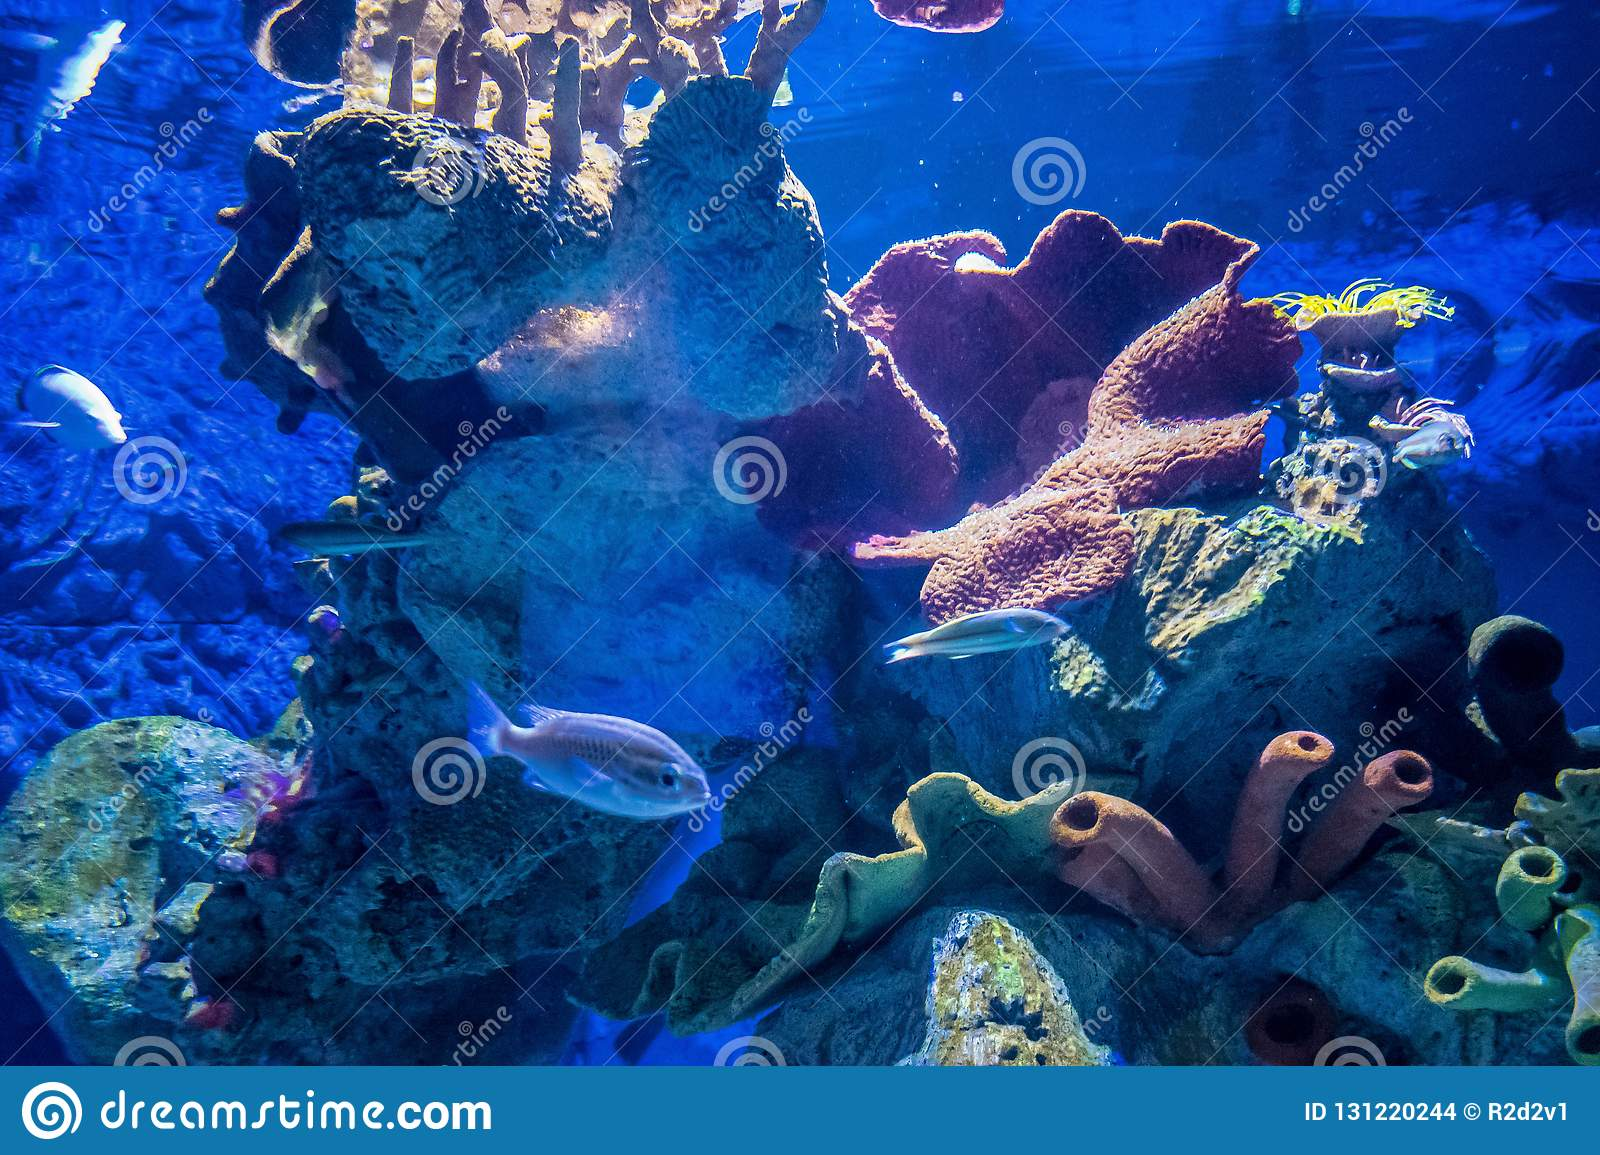 Tropical fish in an aquarium with coral